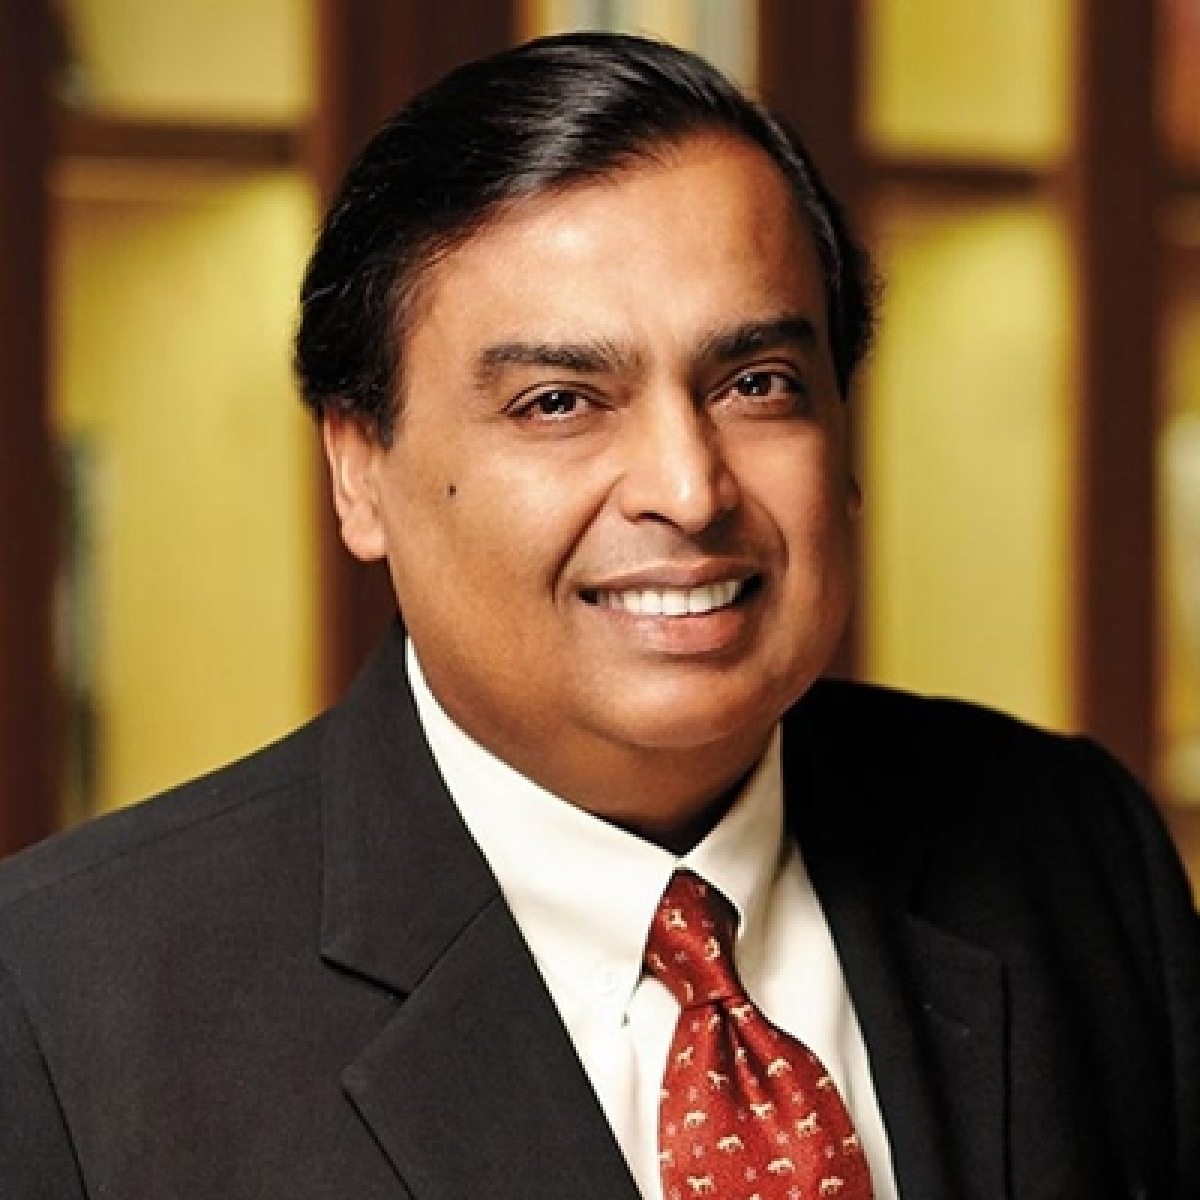 Reliance Industries to spin off O2C biz: Expects approvals for 100% subsidiary by second quarter of FY 2022